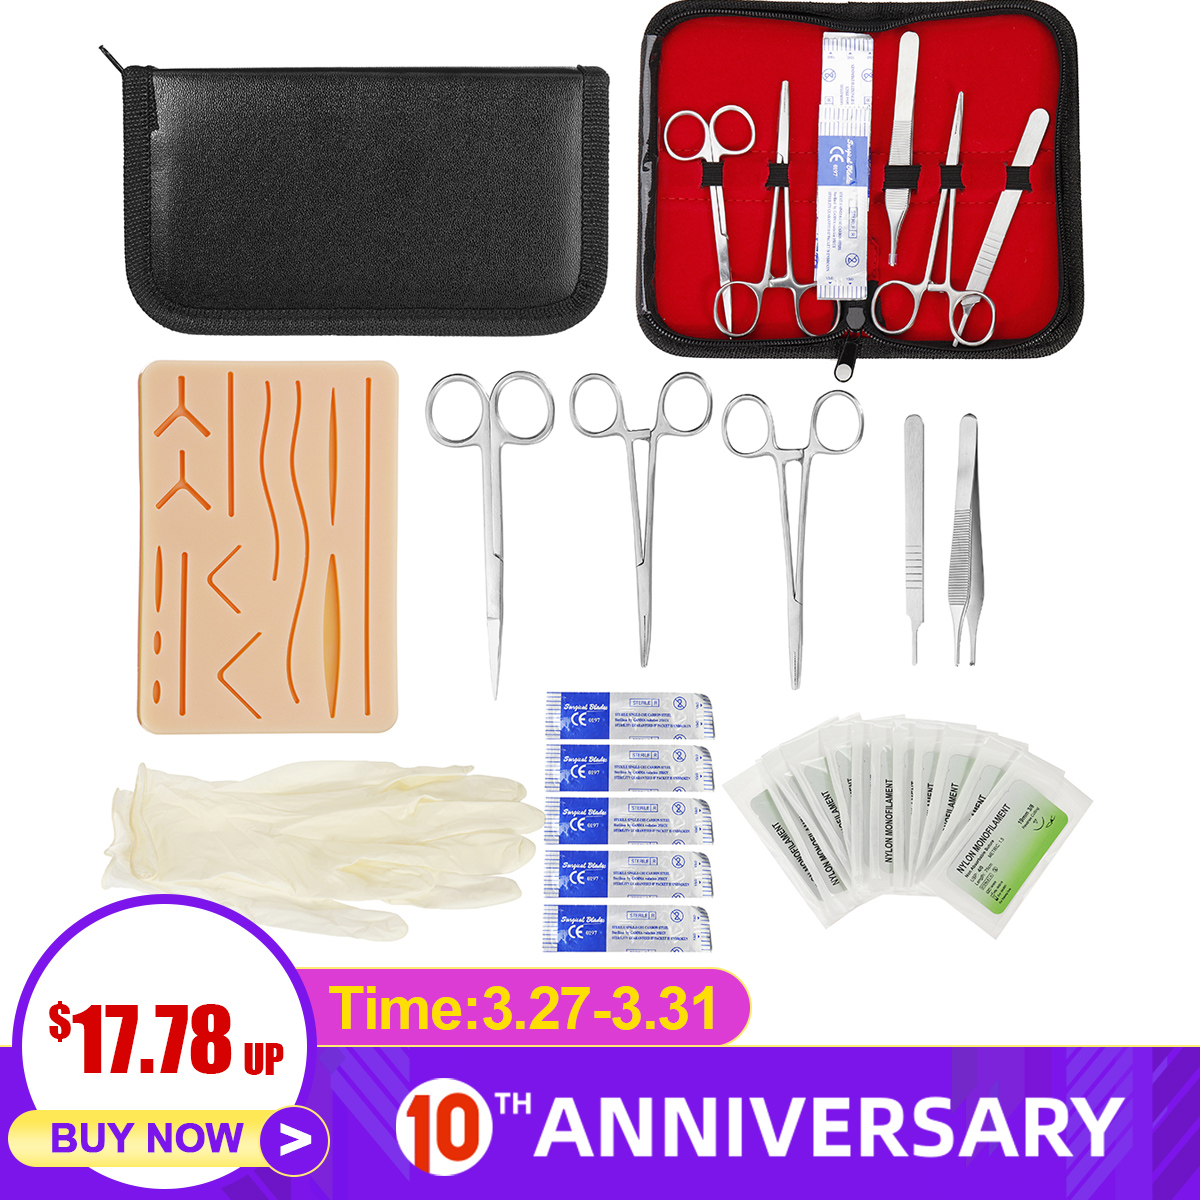 25 In 1 Medical Skin Surgical Suture Training Kit Operate Suture Practice Training Silicone Pad Needle Scissors Tool Kit